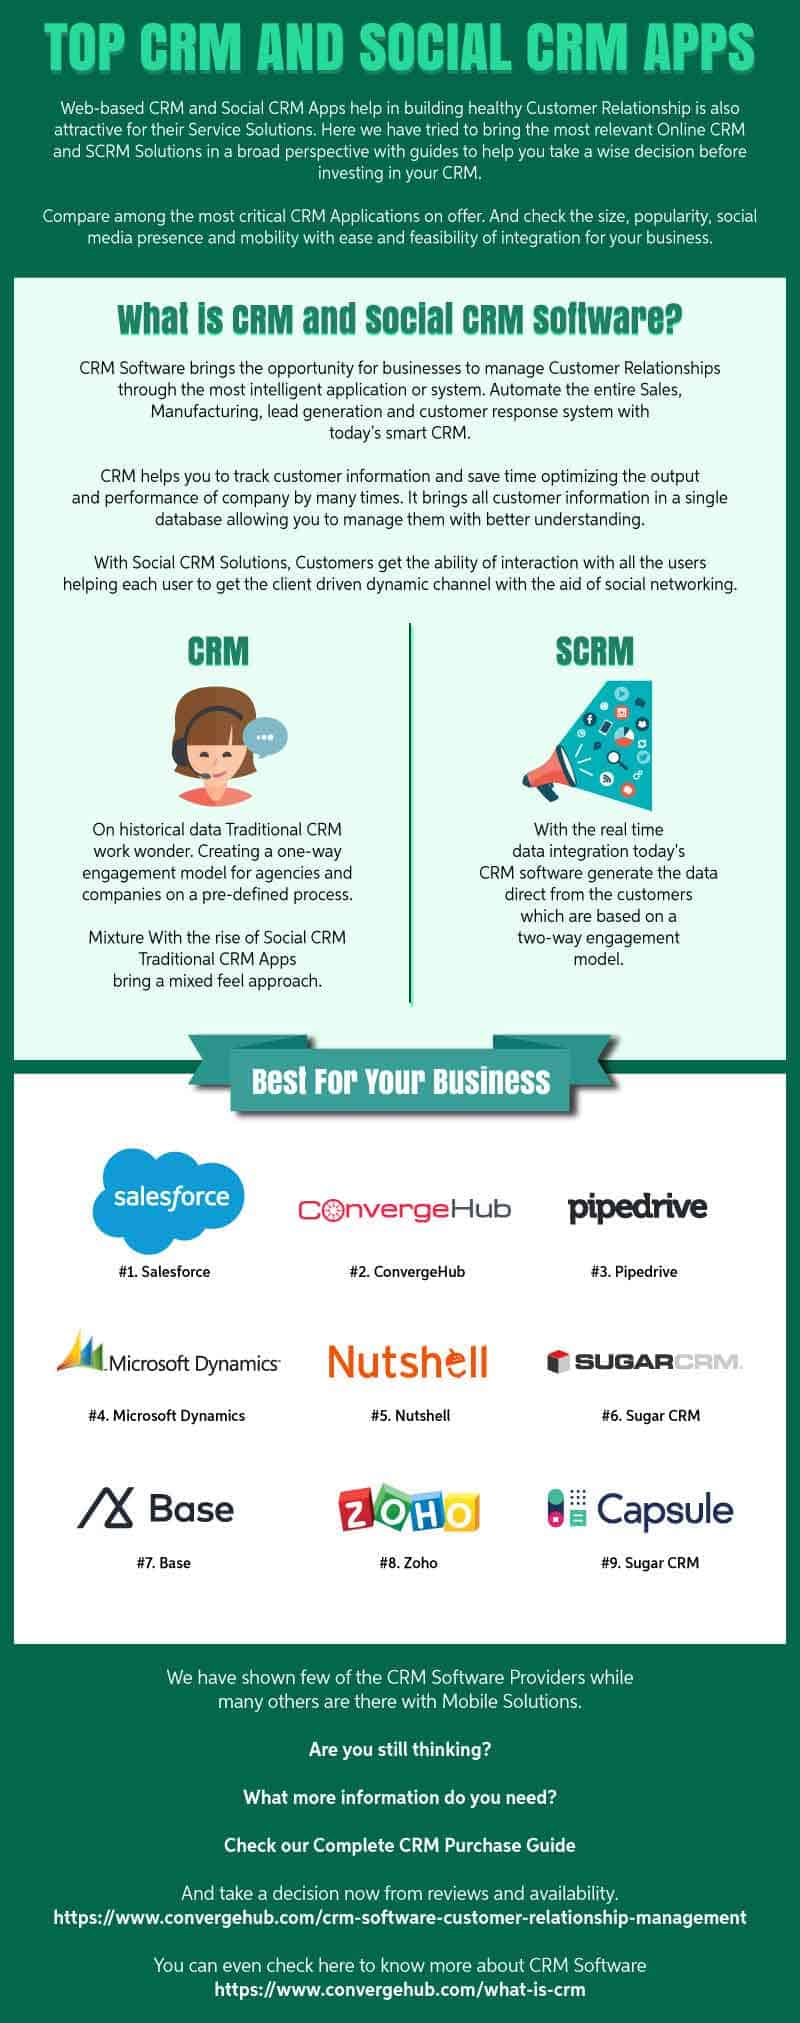 TOP CRM and Social CRM Apps